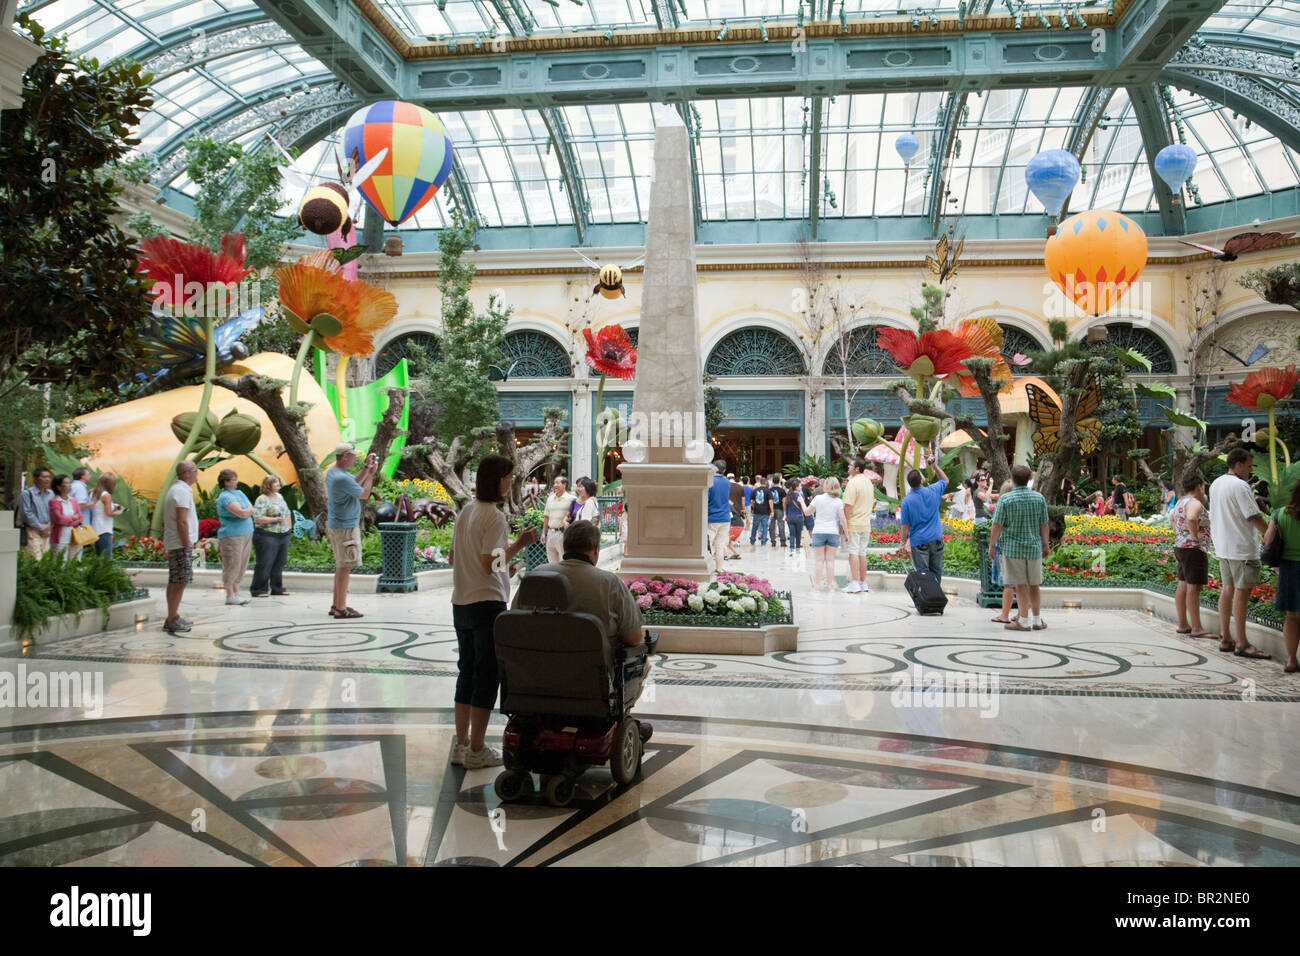 People Enjoying The Conservatory And Botanical Gardens, The Bellagio Hotel,  Las Vegas USA